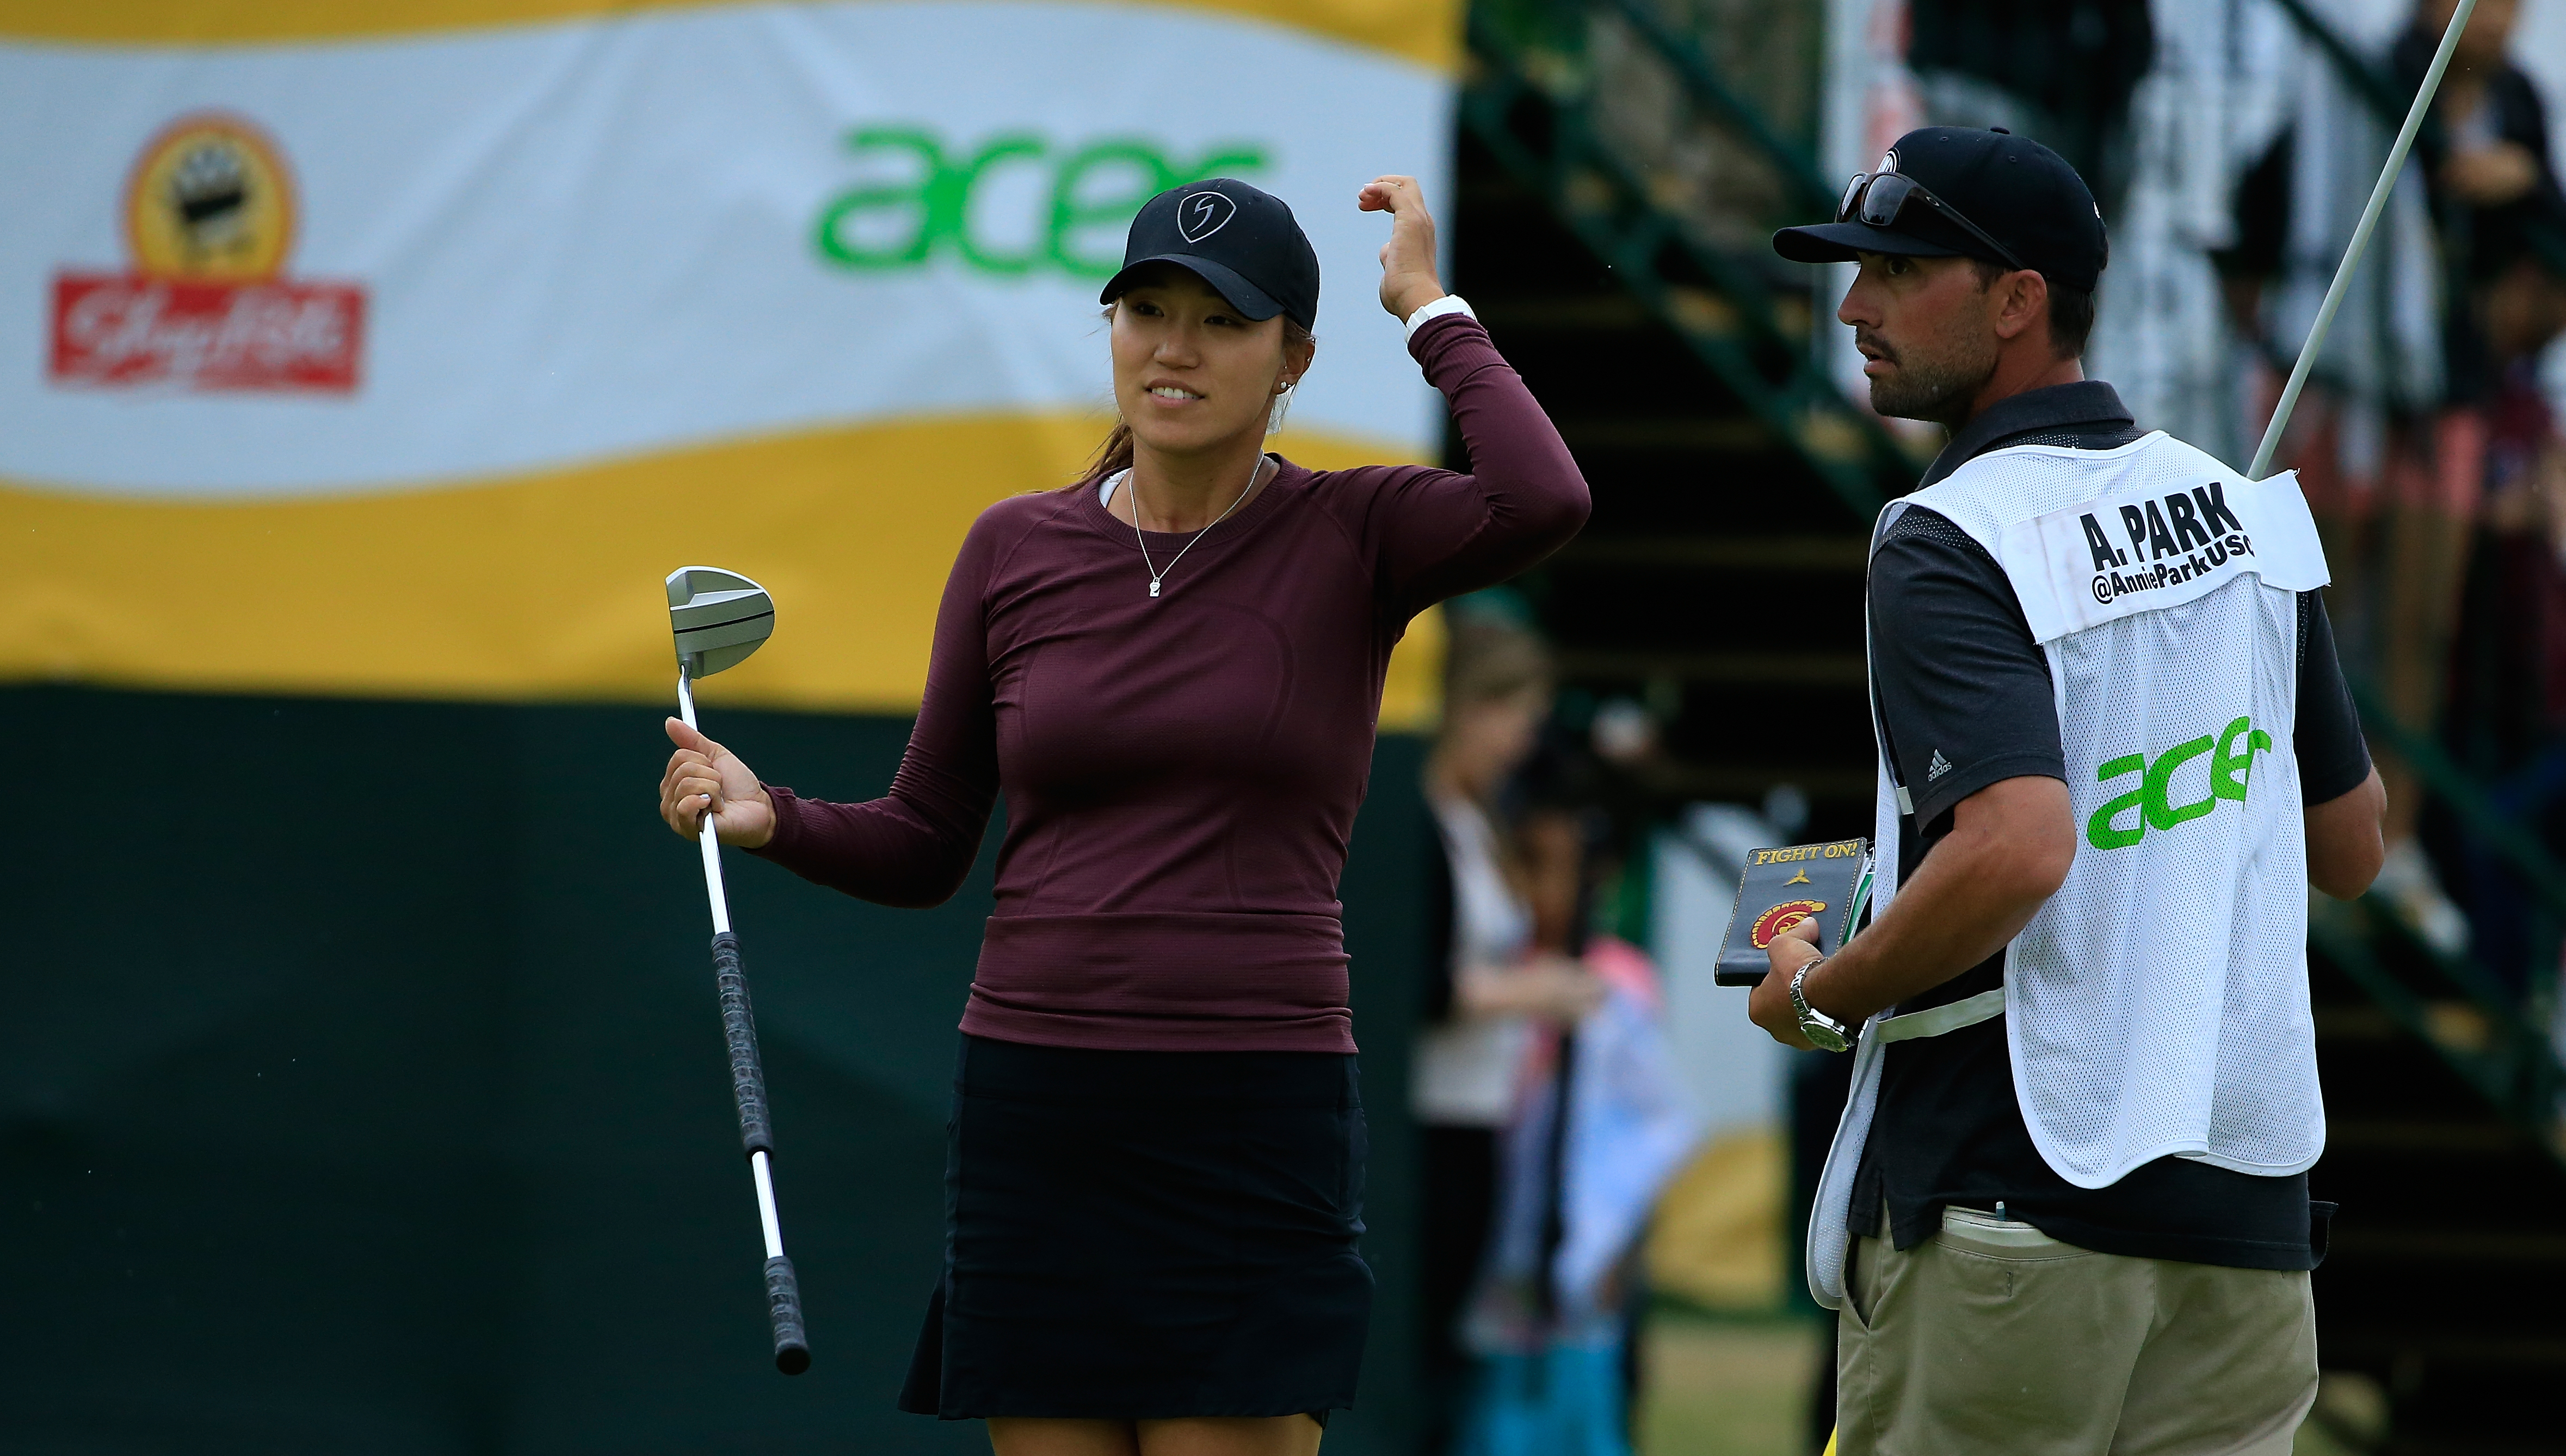 GALLOWAY, NJ - JUNE 10: Annie Park arrives at the 18th green the during the third and final round of the ShopRite LPGA Classic Presented by Acer on the Bay Course at Stockton Seaview Hotel and Golf Club on June 10, 2018 in Galloway, New Jersey. (Photo by Michael Cohen/Getty Images)